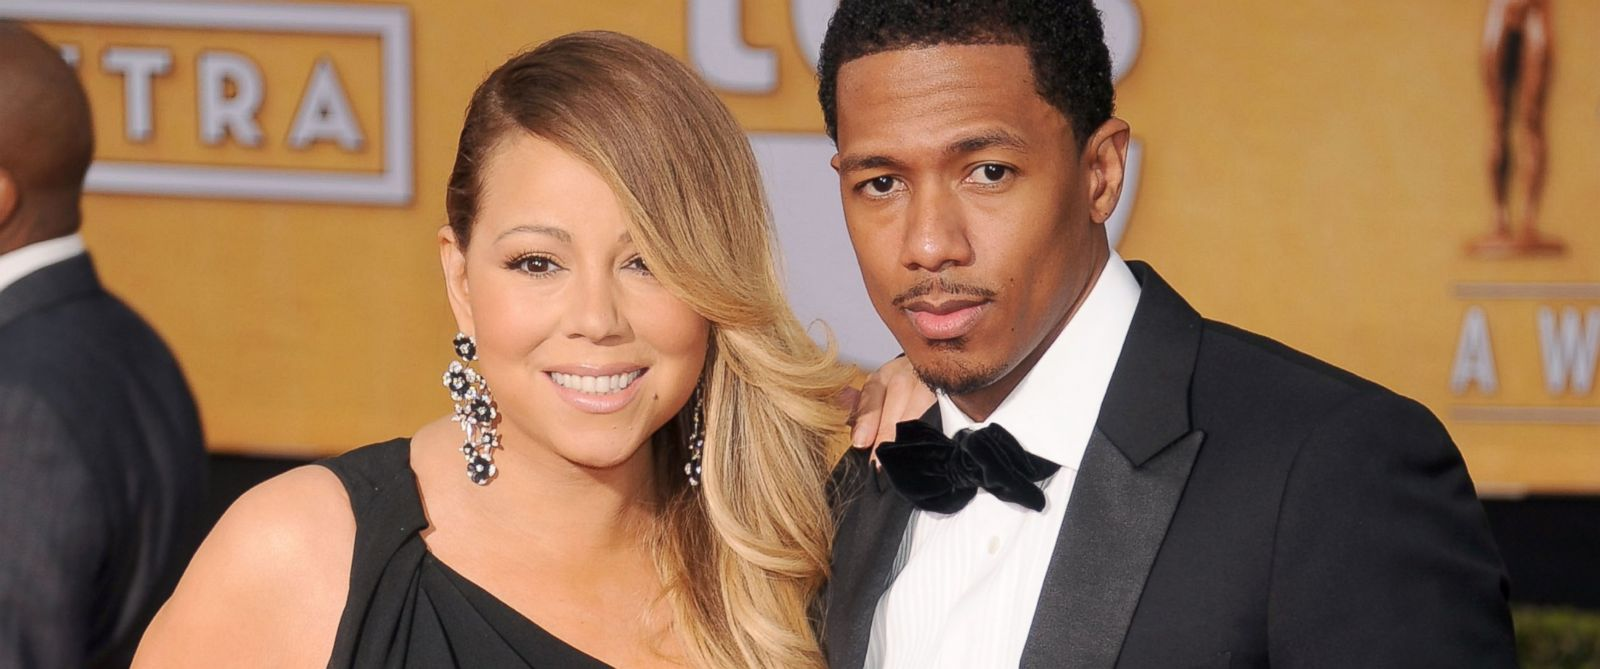 PHOTO: Singer Mariah Carey and actor/TV personality Nick Cannon arrive at the 20th Annual Screen Actors Guild Awards at The Shrine Auditorium, Jan. 18, 2014 in Los Angeles, Calif.